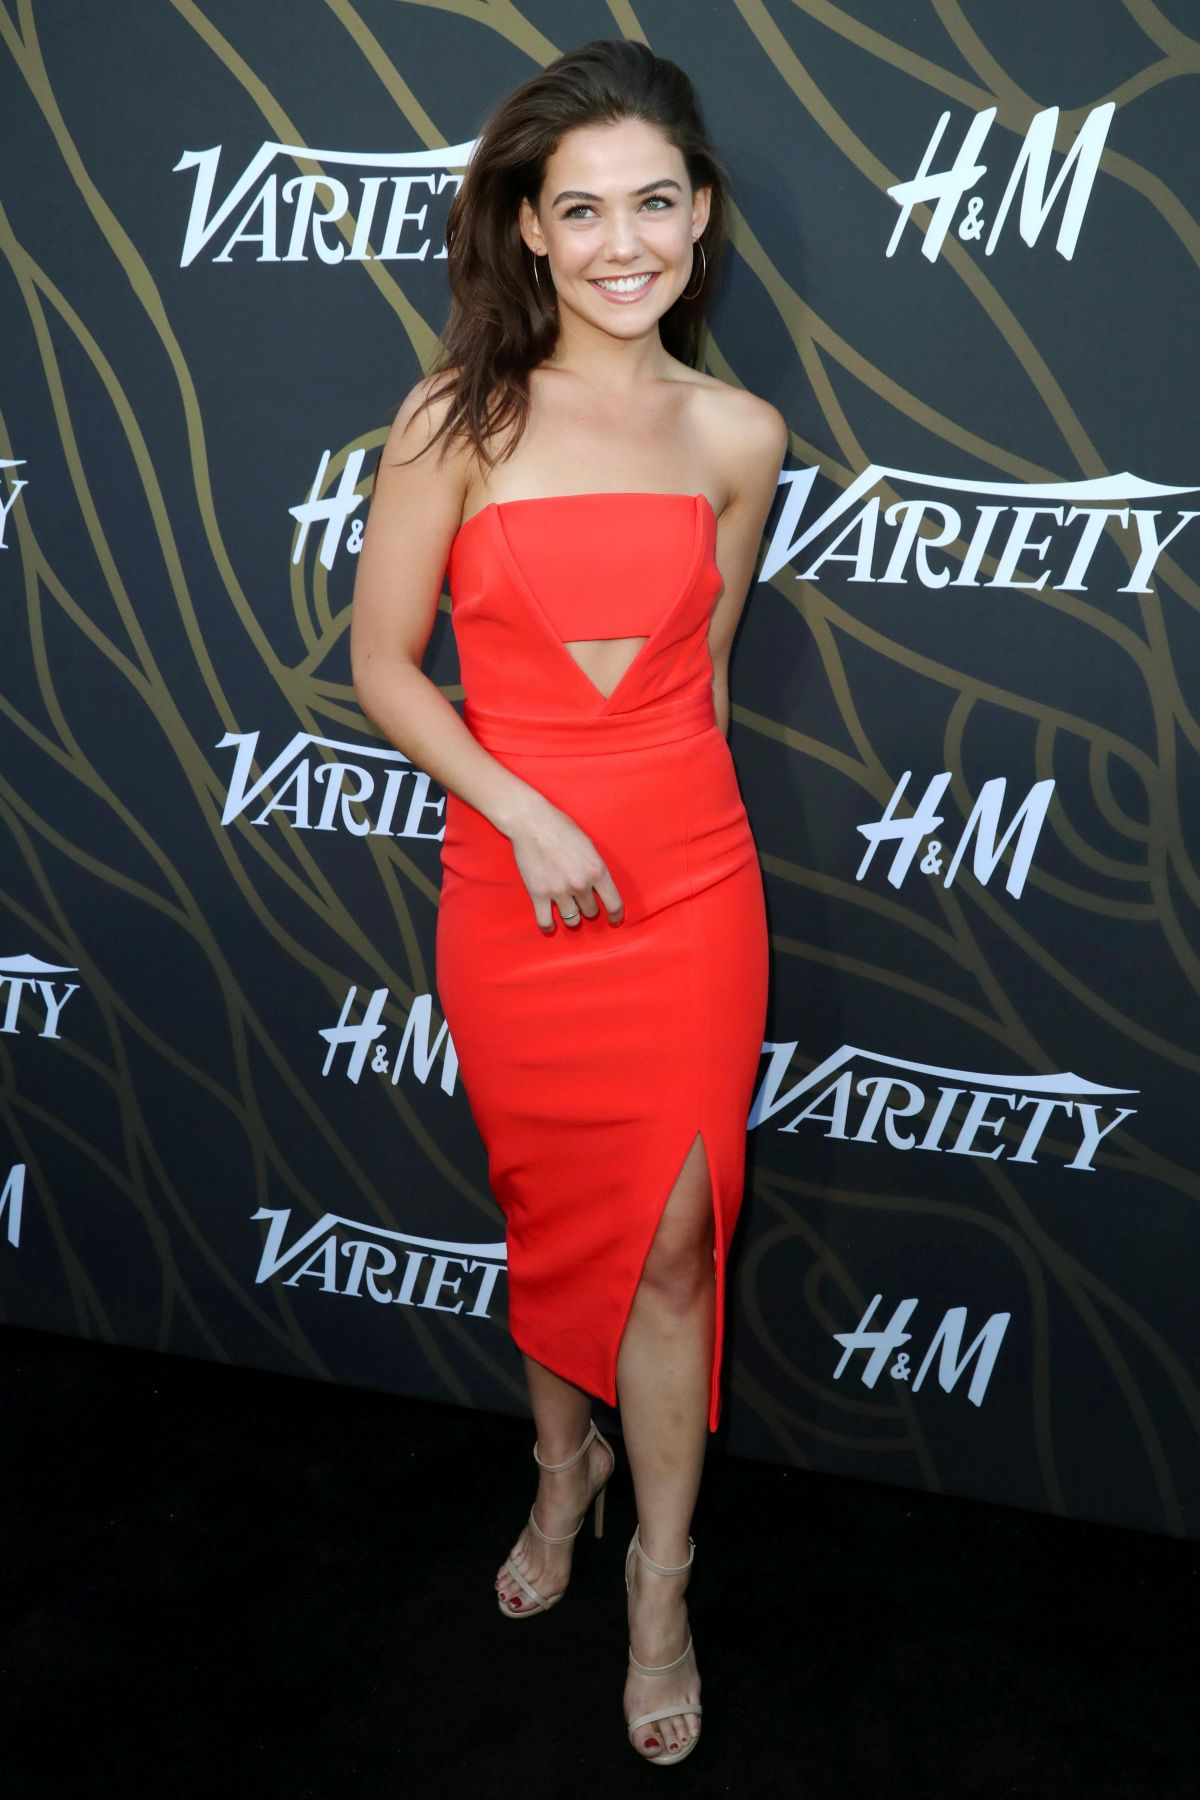 Danielle Campbell At Variety's Power of young Hollywood in <u>vuitton</u> LA danielle-campbell-at-variety-s-power-of-young-hollywood-in-la-_1